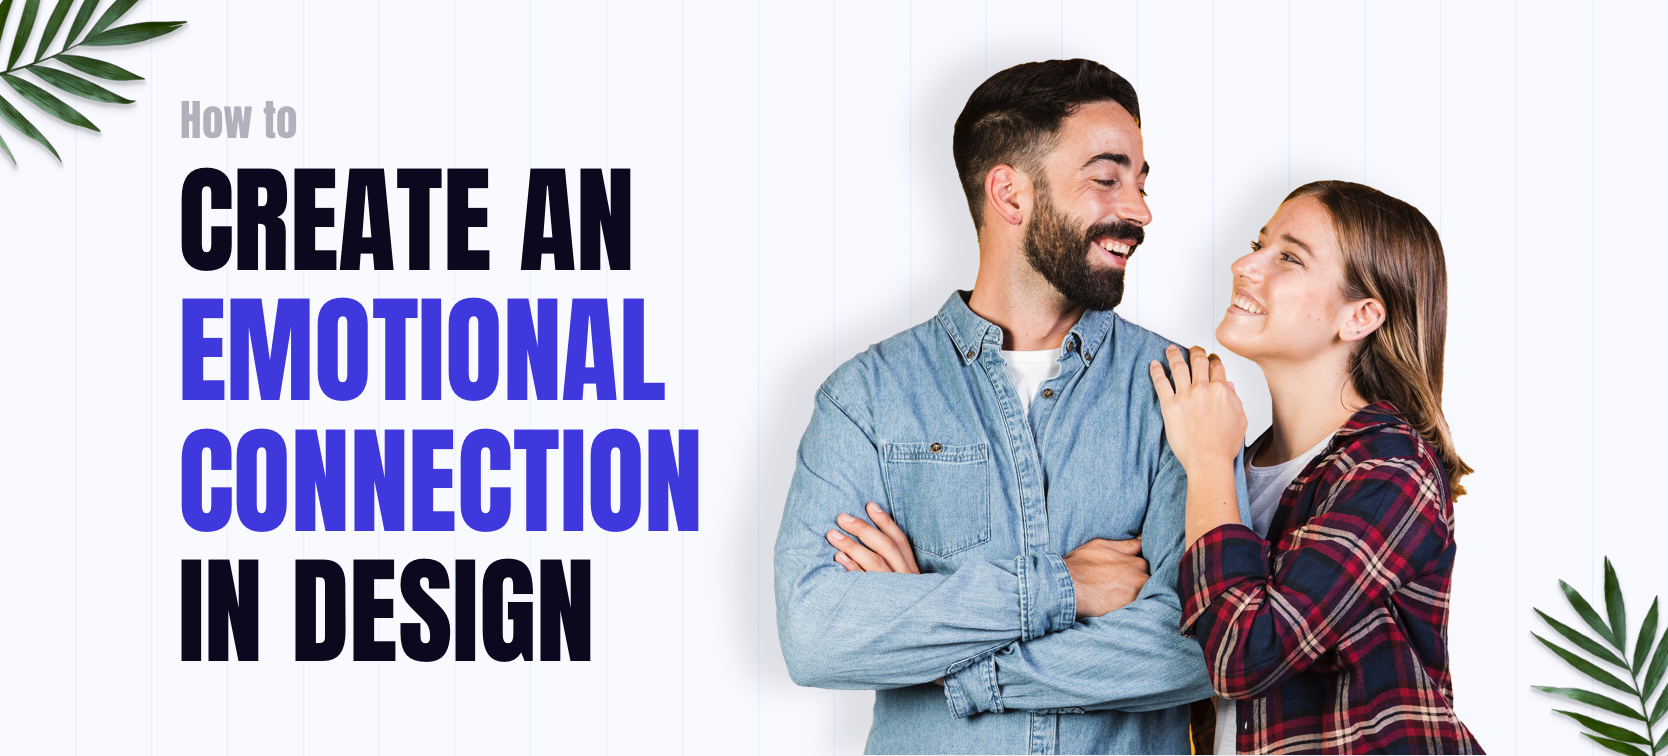 How to Create an Emotional Connection in Design